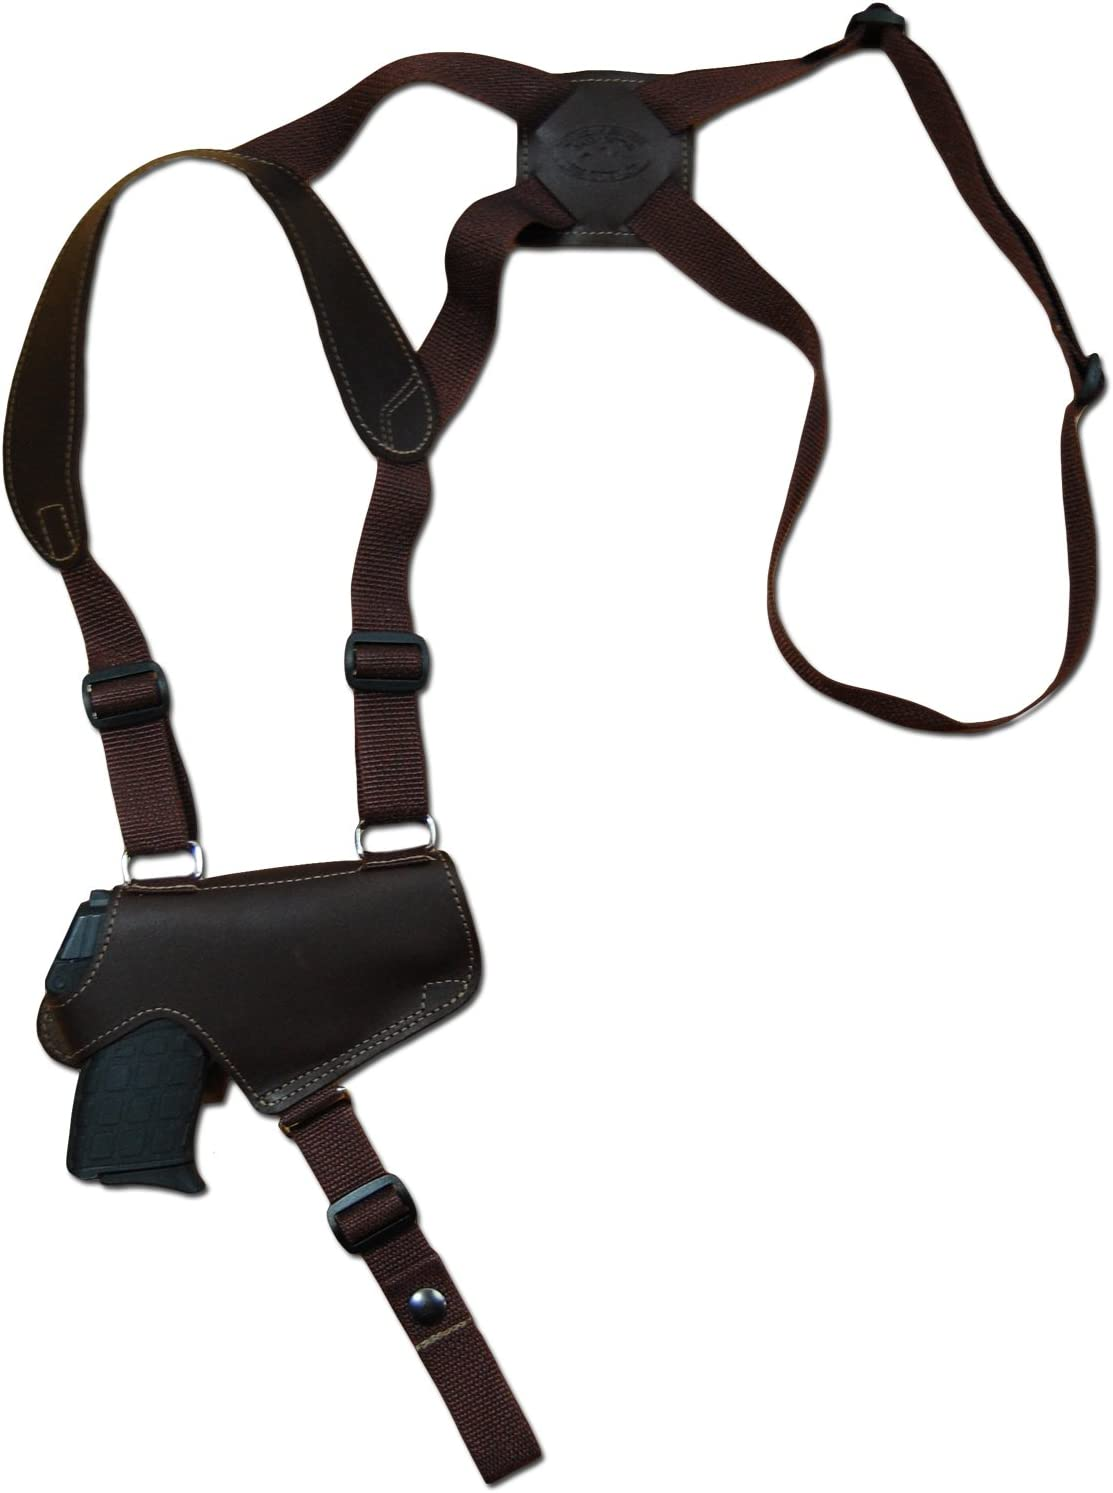 NEW Barsony Tan Leather Shoulder Holster for Kimber Ruger Small 380 Ultra-Comp